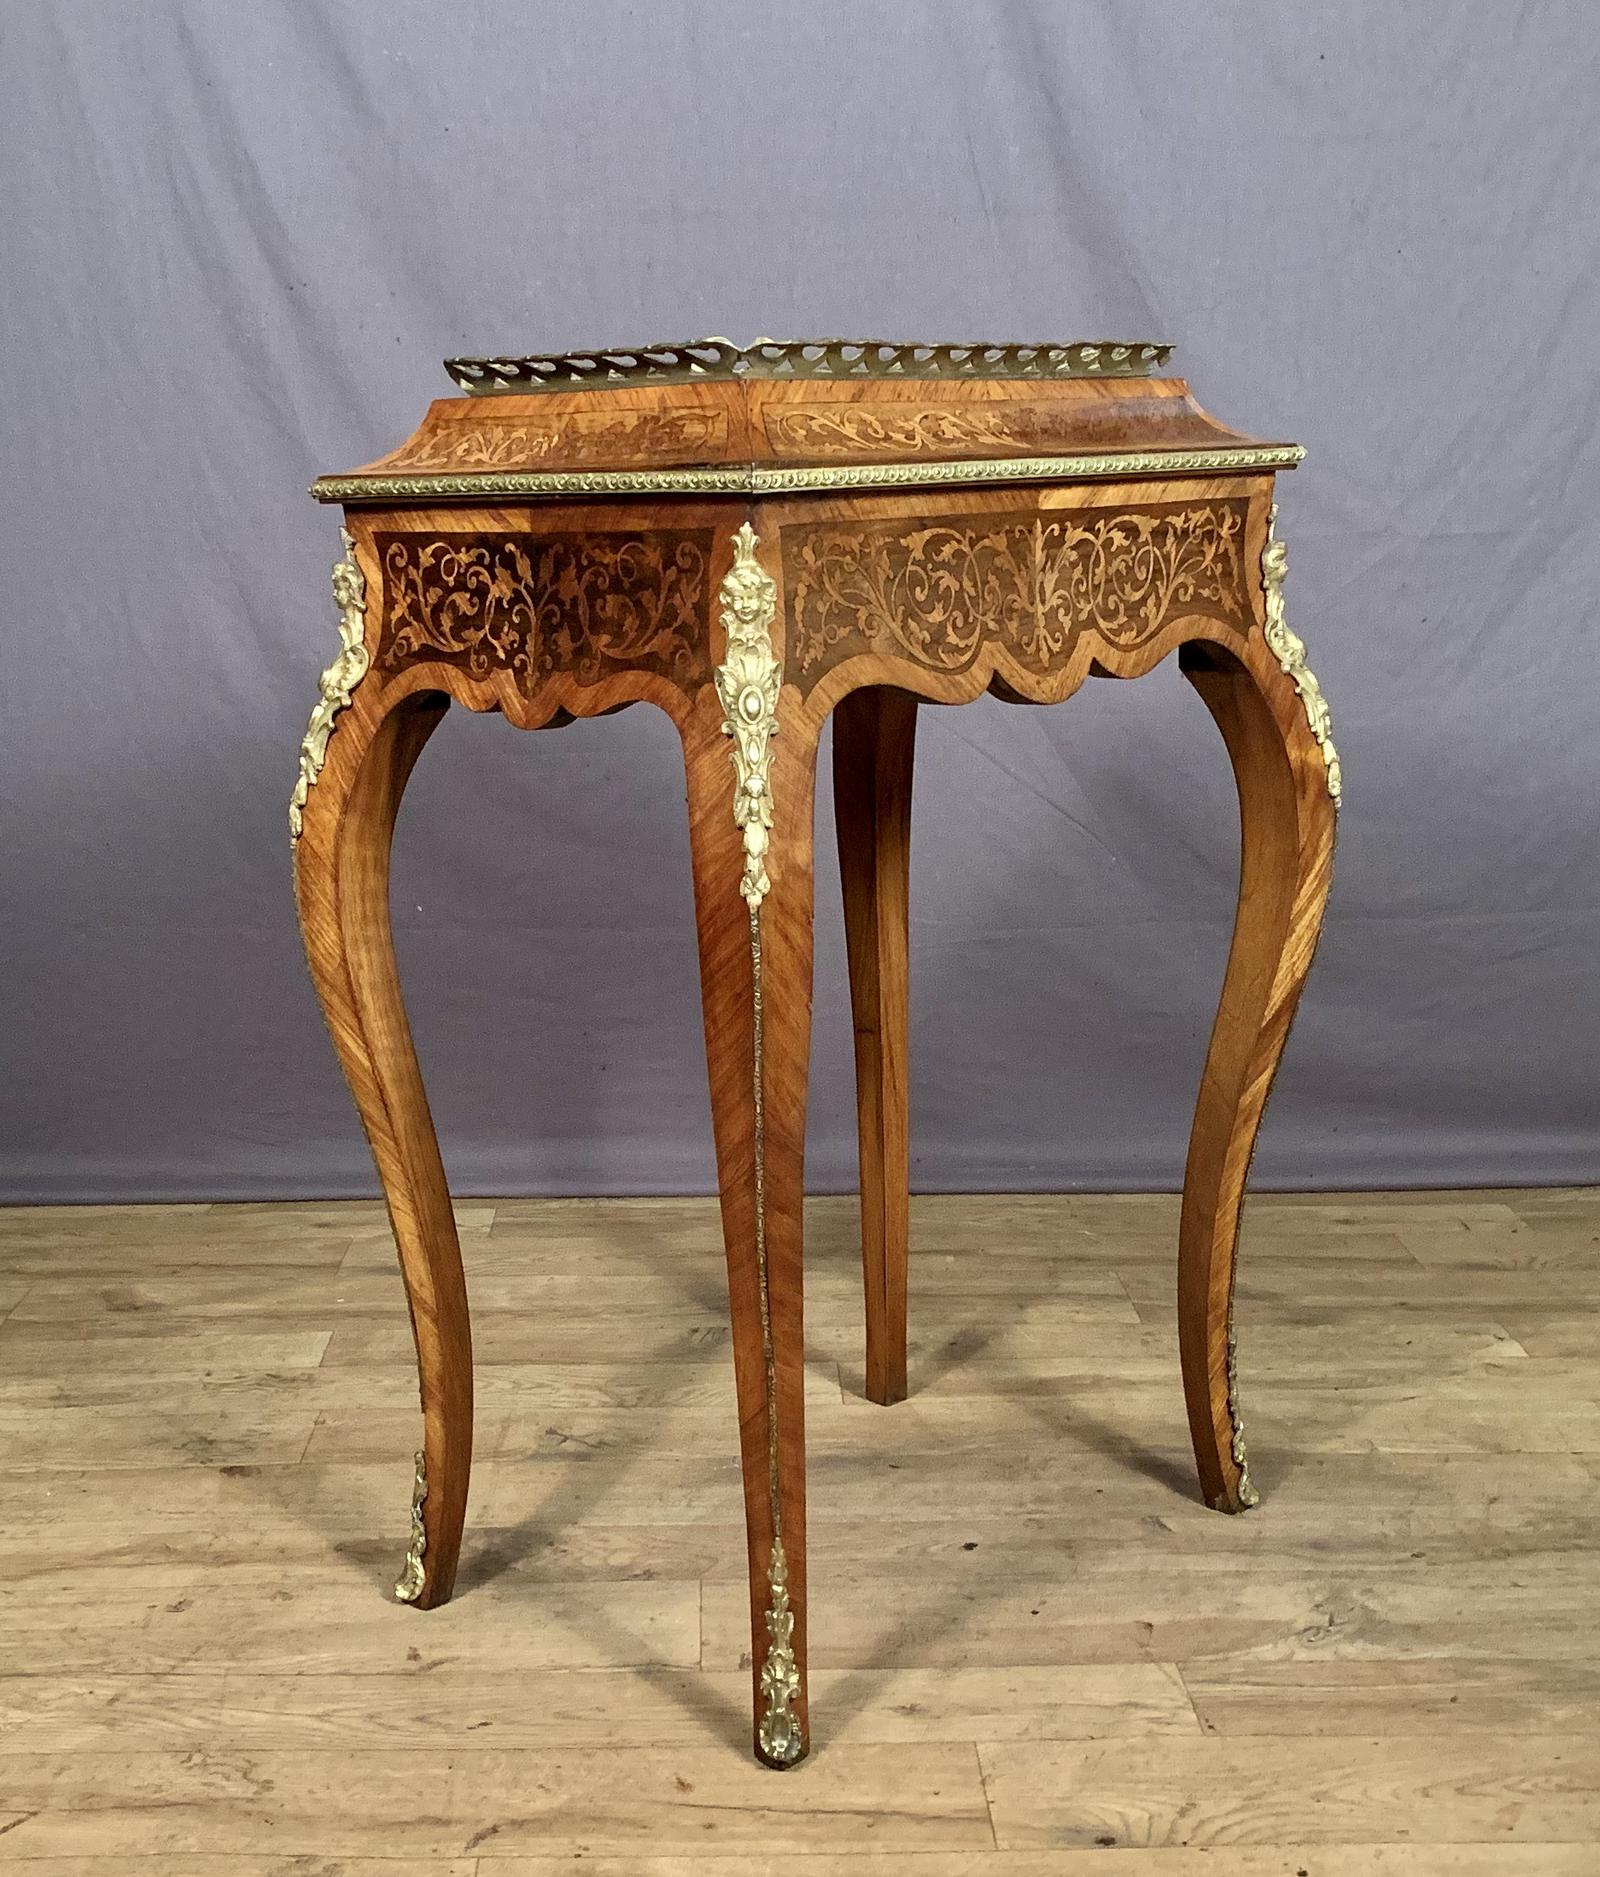 Anthony Wilkinson Decorative Antiques image (3 of 5)